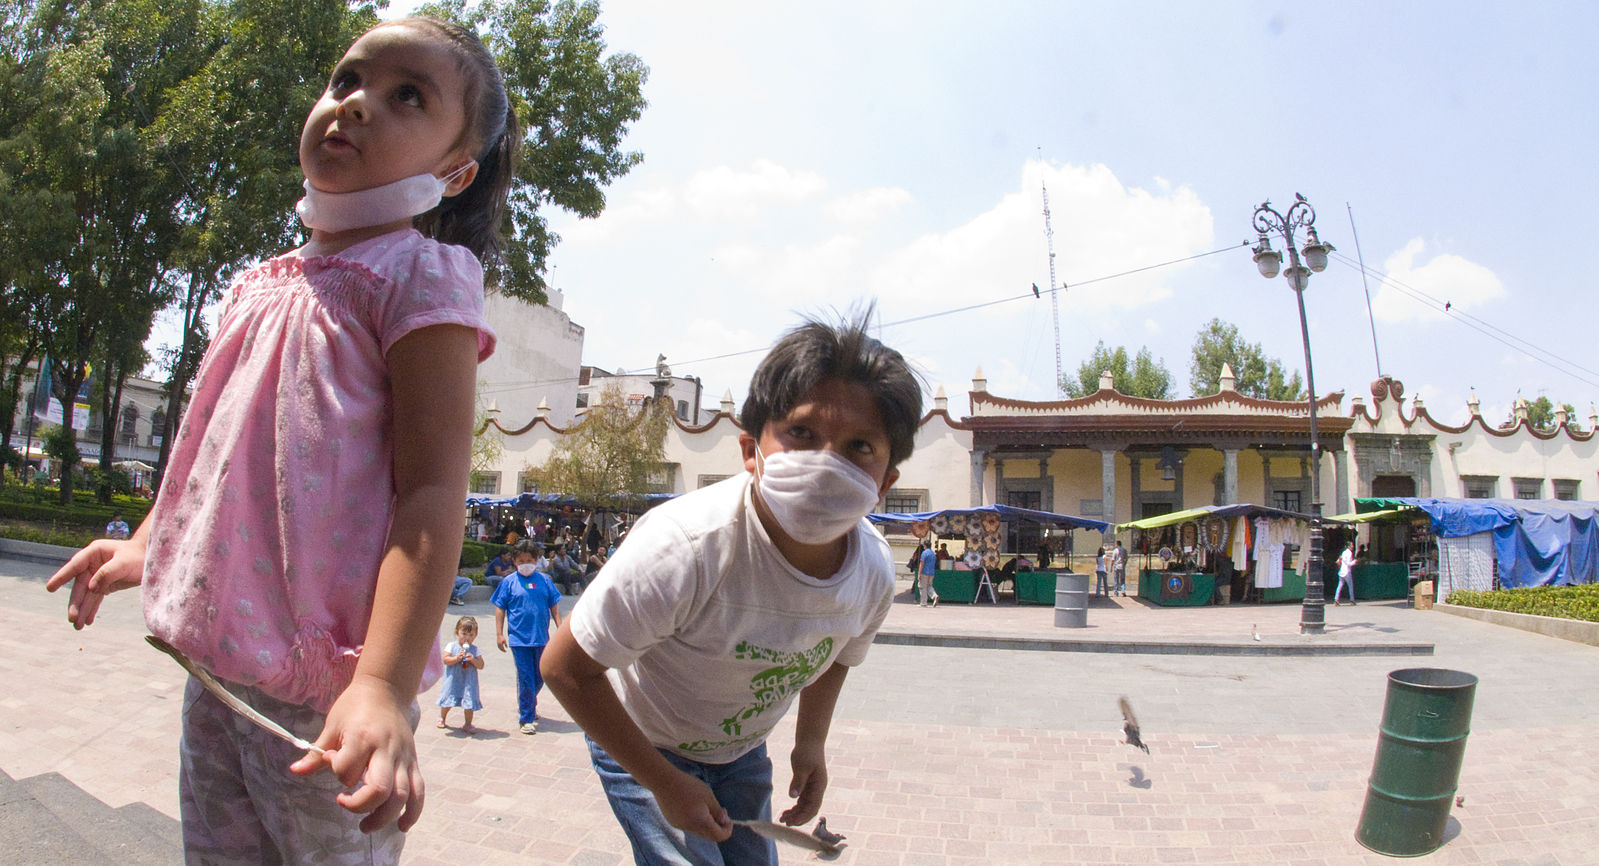 Children in Mexico wear masks during the 2009 swine flu outbreak. New flu pandemics are just one of the many public health crises linked to factory farming.  Image source